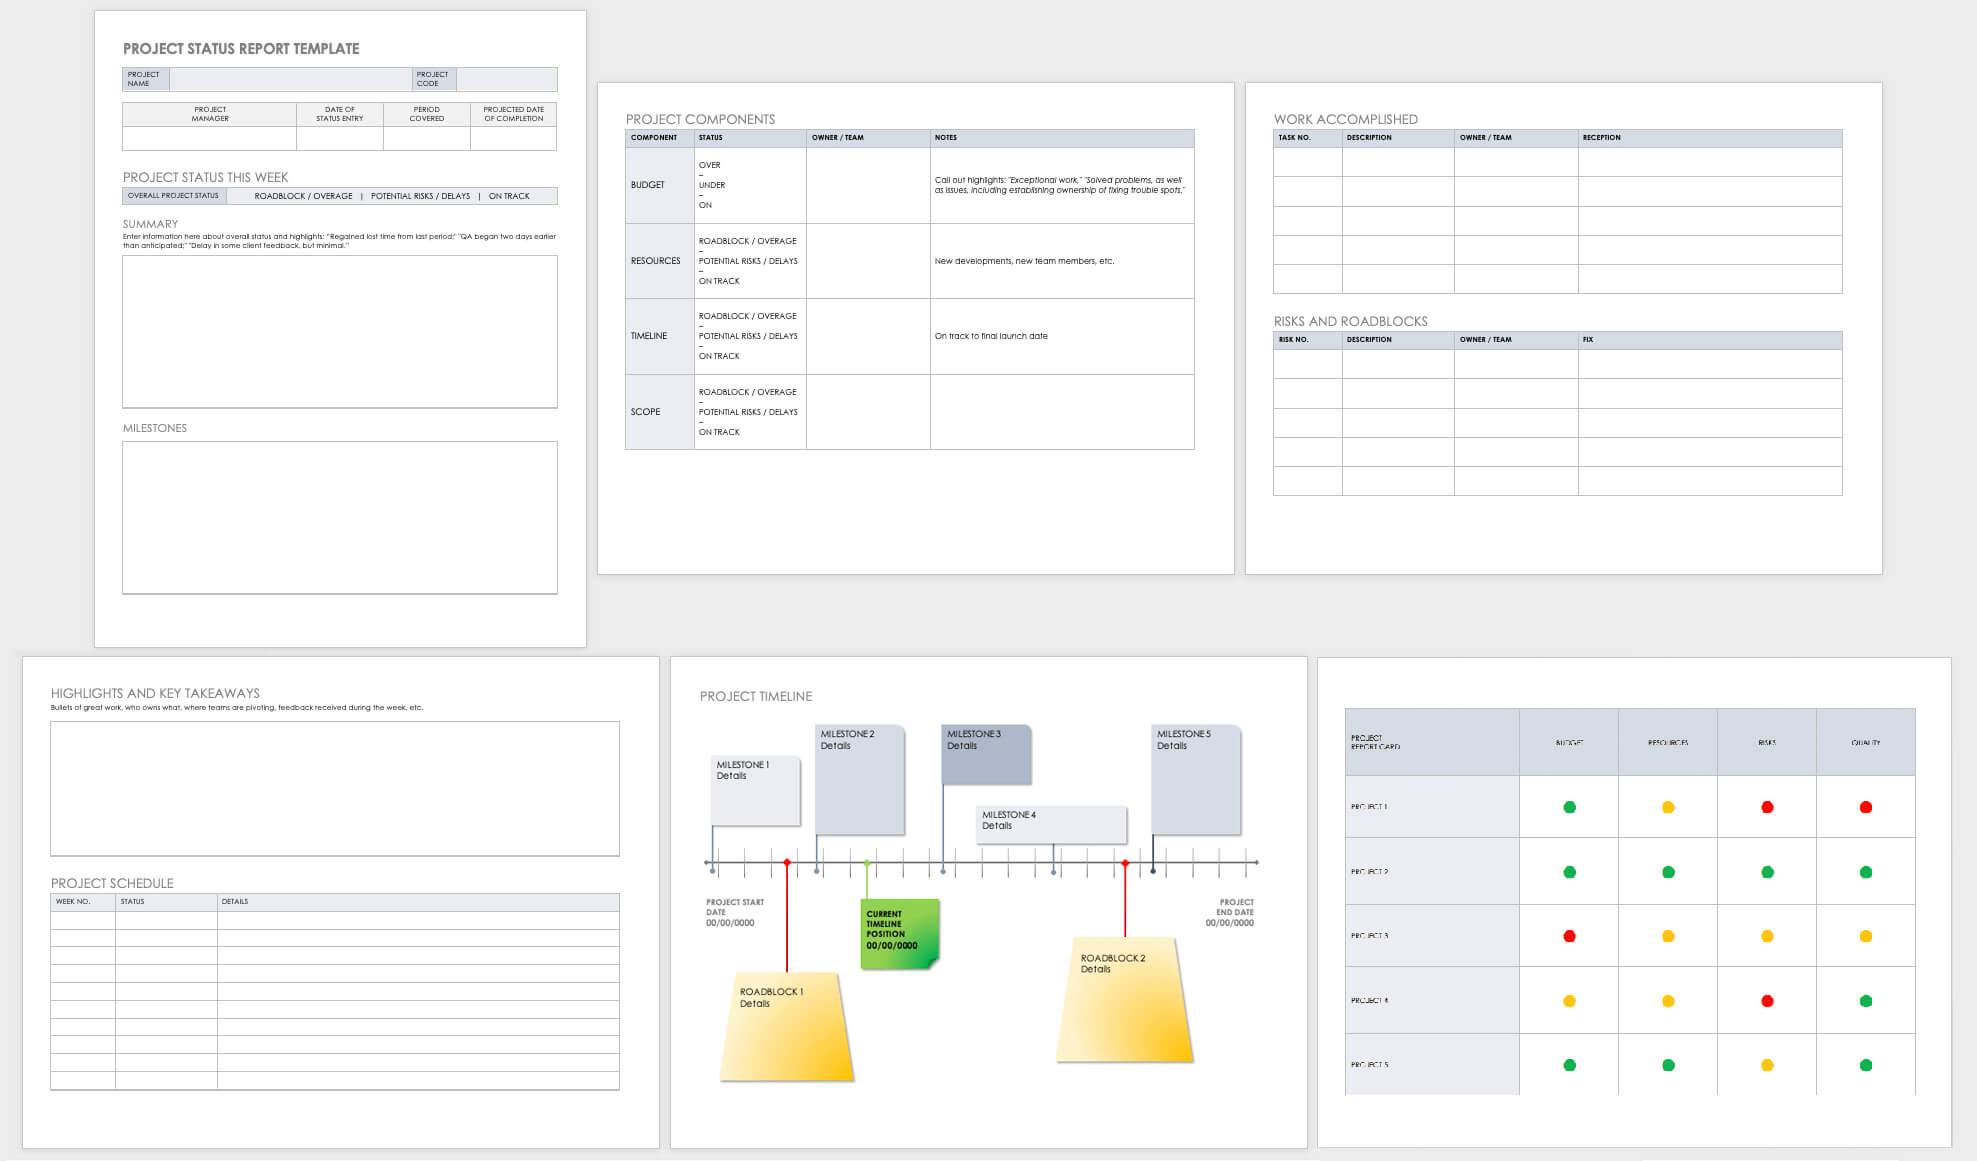 Free Project Report Templates | Smartsheet Within Project Management Status Report Template